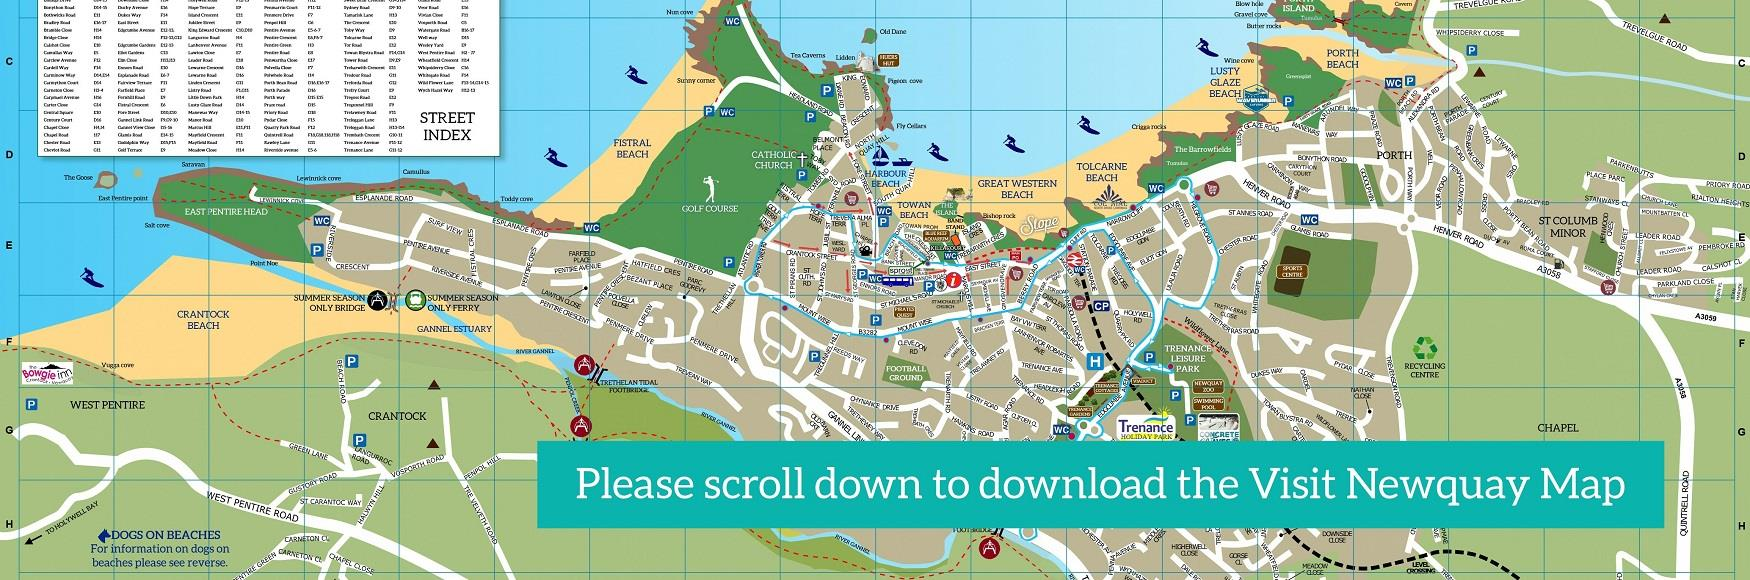 Map Of Newquay Maps   Newquay